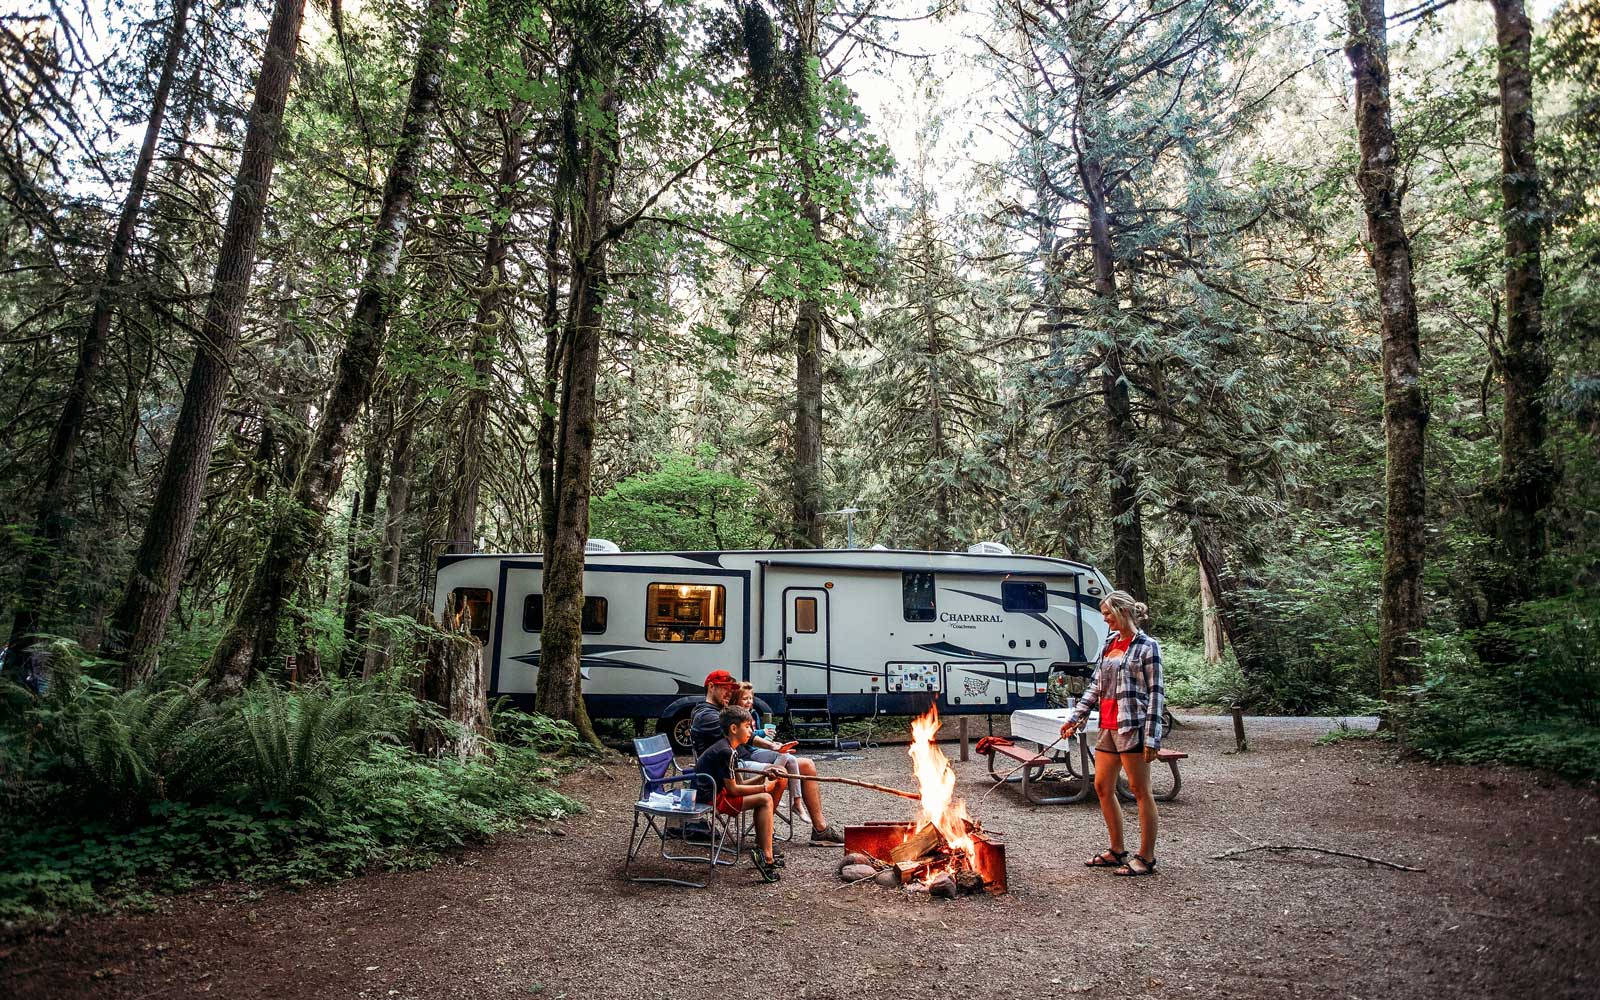 Camping at Disney World Is Affordable and Fun — and This RV Is an Adorable Way to Do It